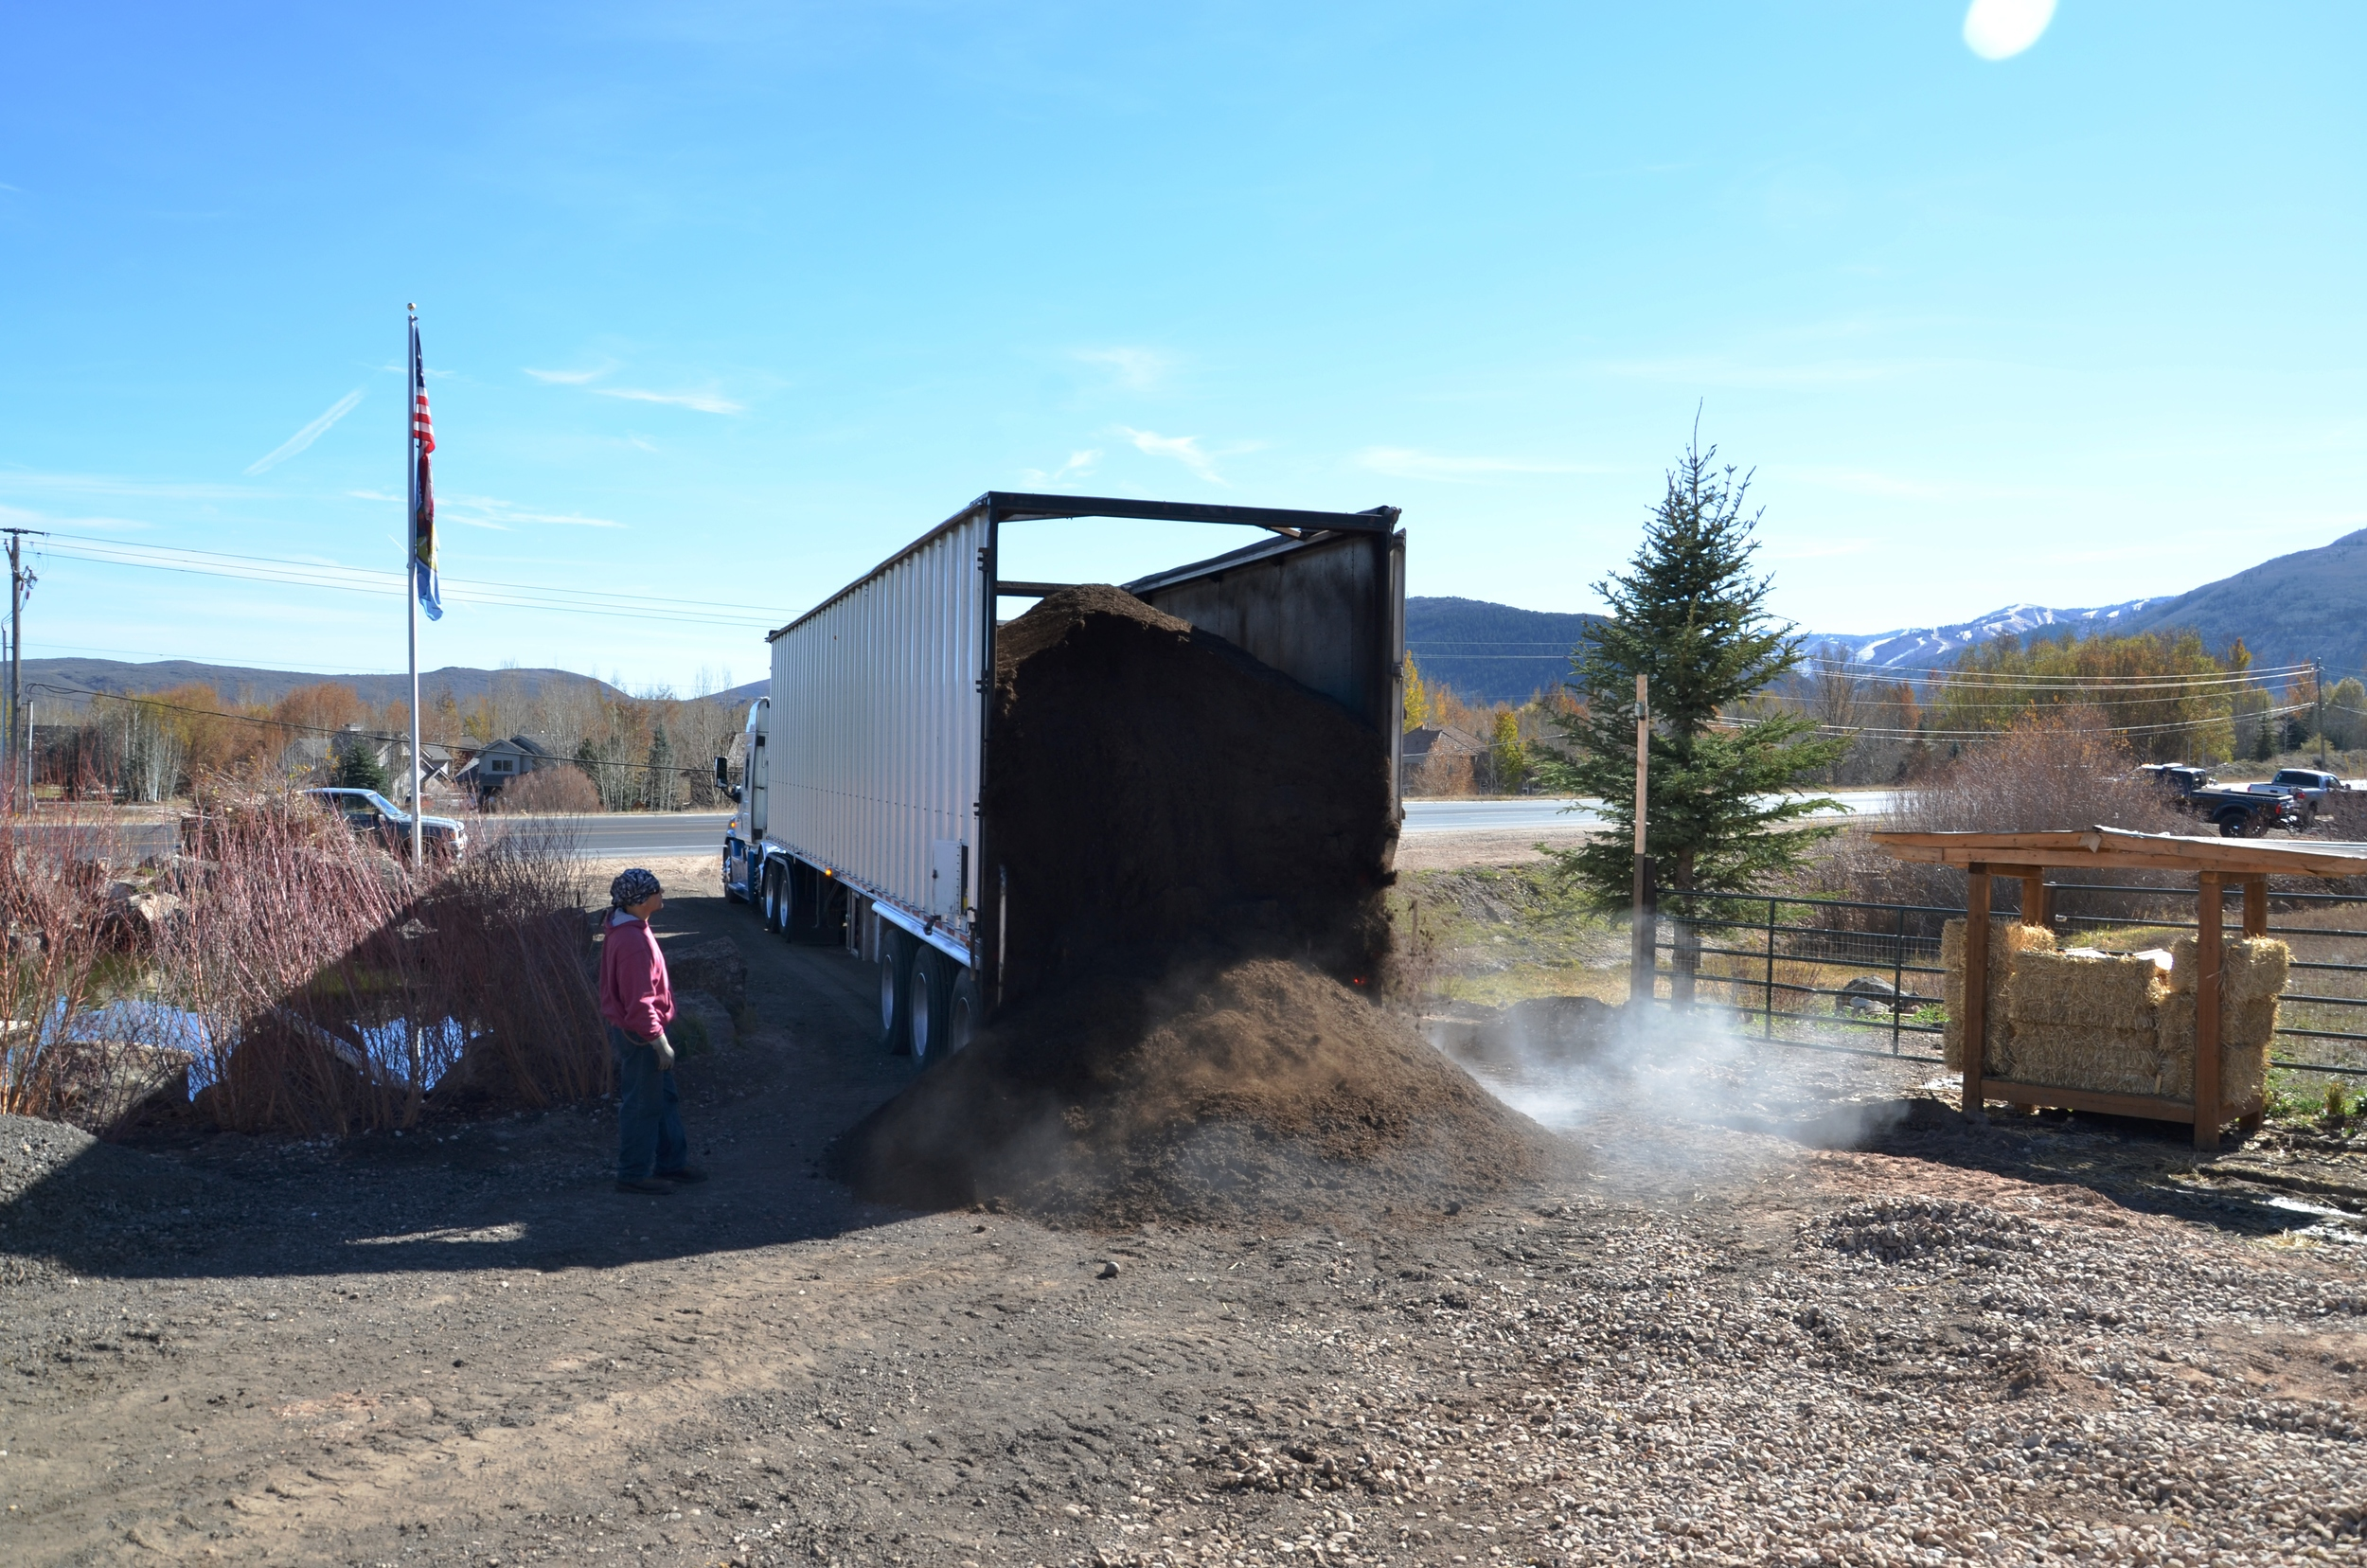 Unloading dirt to be used on surrounding areas around the Bill White Farms to help beautify and restore the vegetation and landscape.